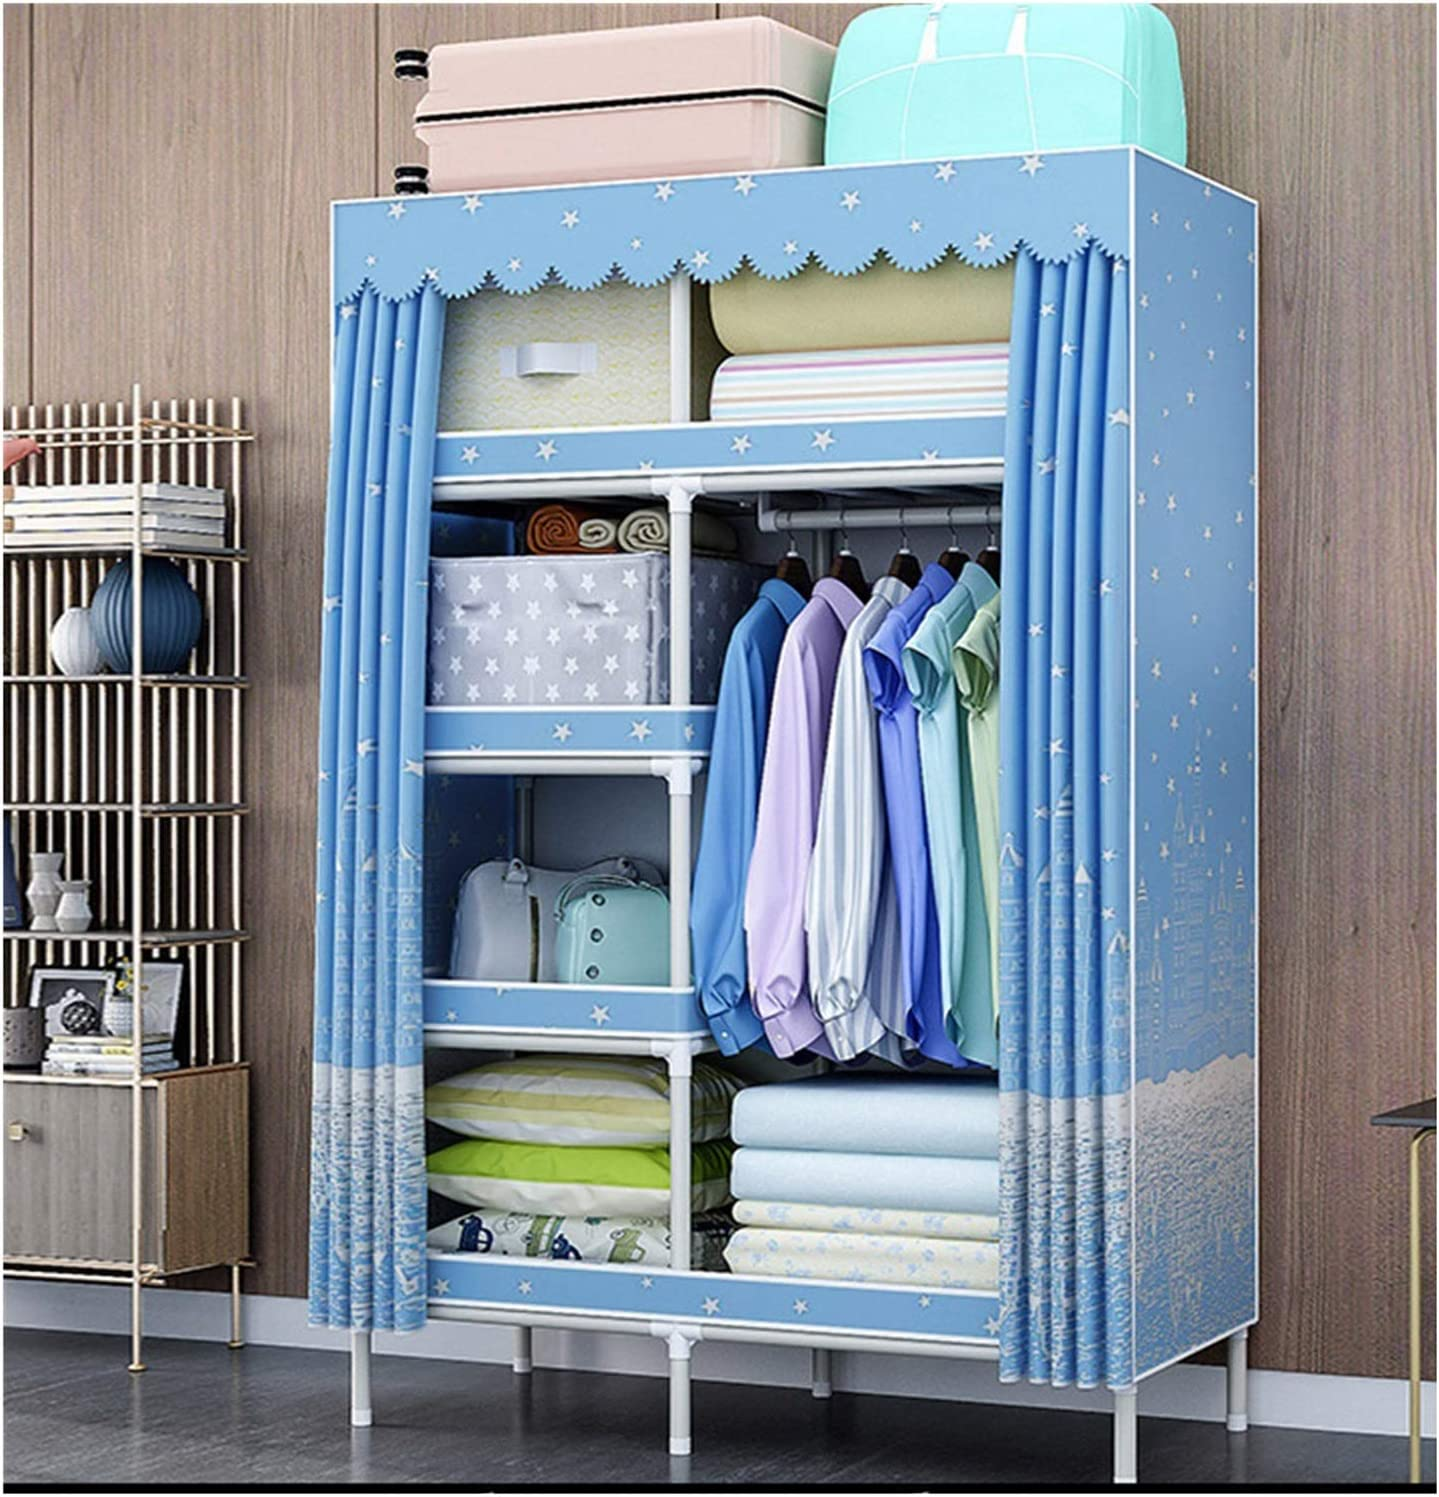 Color : A, Size : 100/×45/×168cm Armoire Wardrobe Closet Space Saving Closet Organizer Home Solid Color Steel Pipe Thickened Oxford Cloth